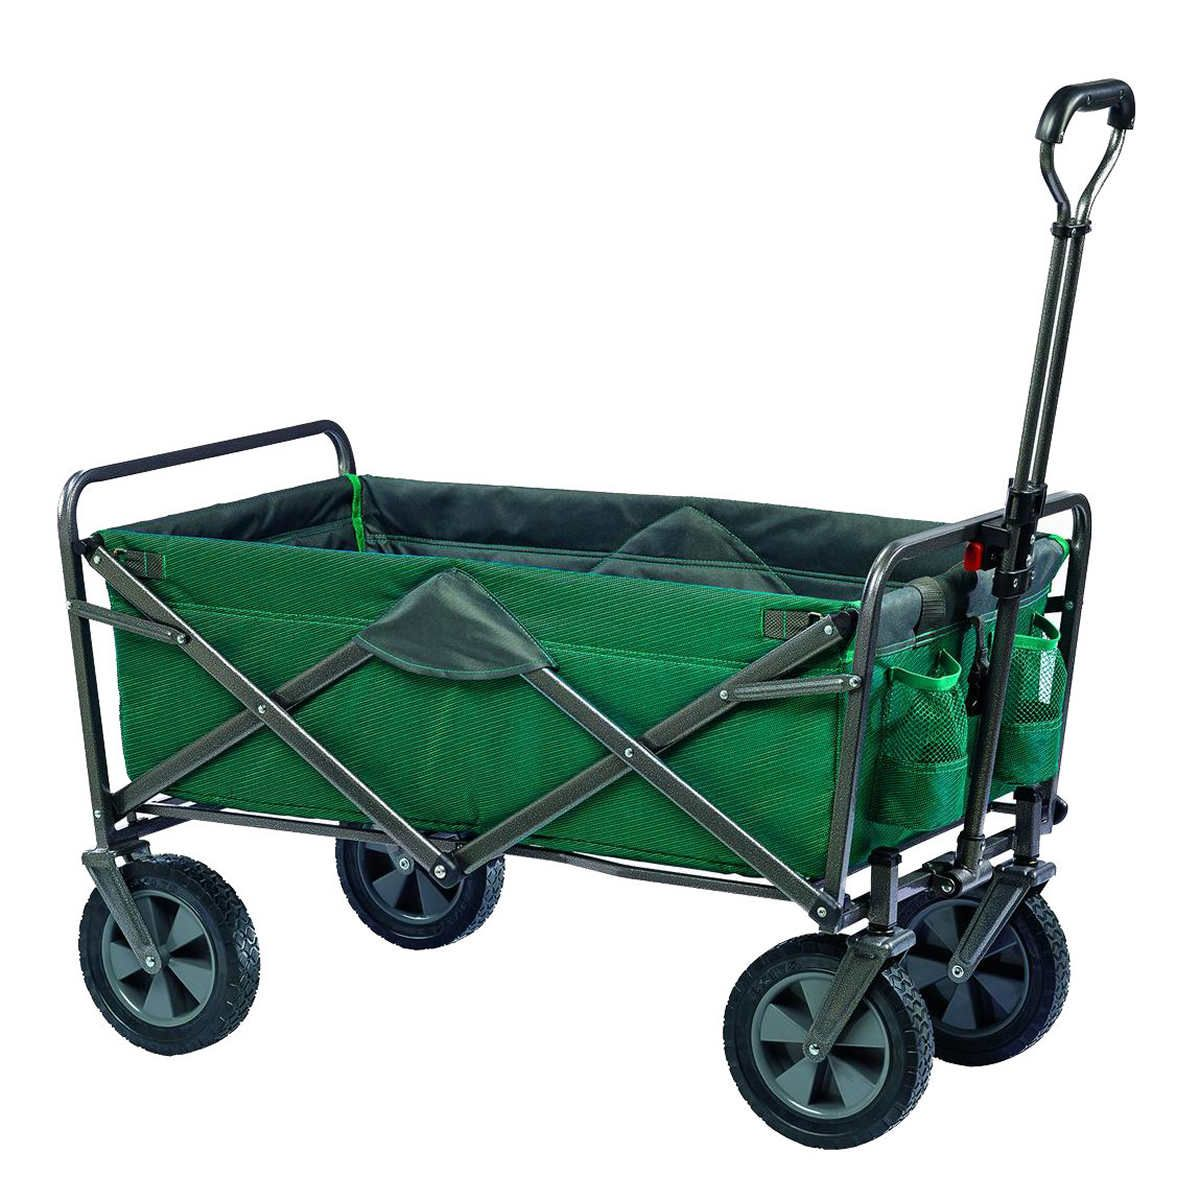 Mac Sports Folding Utility Wagon Utility wagon, Folding